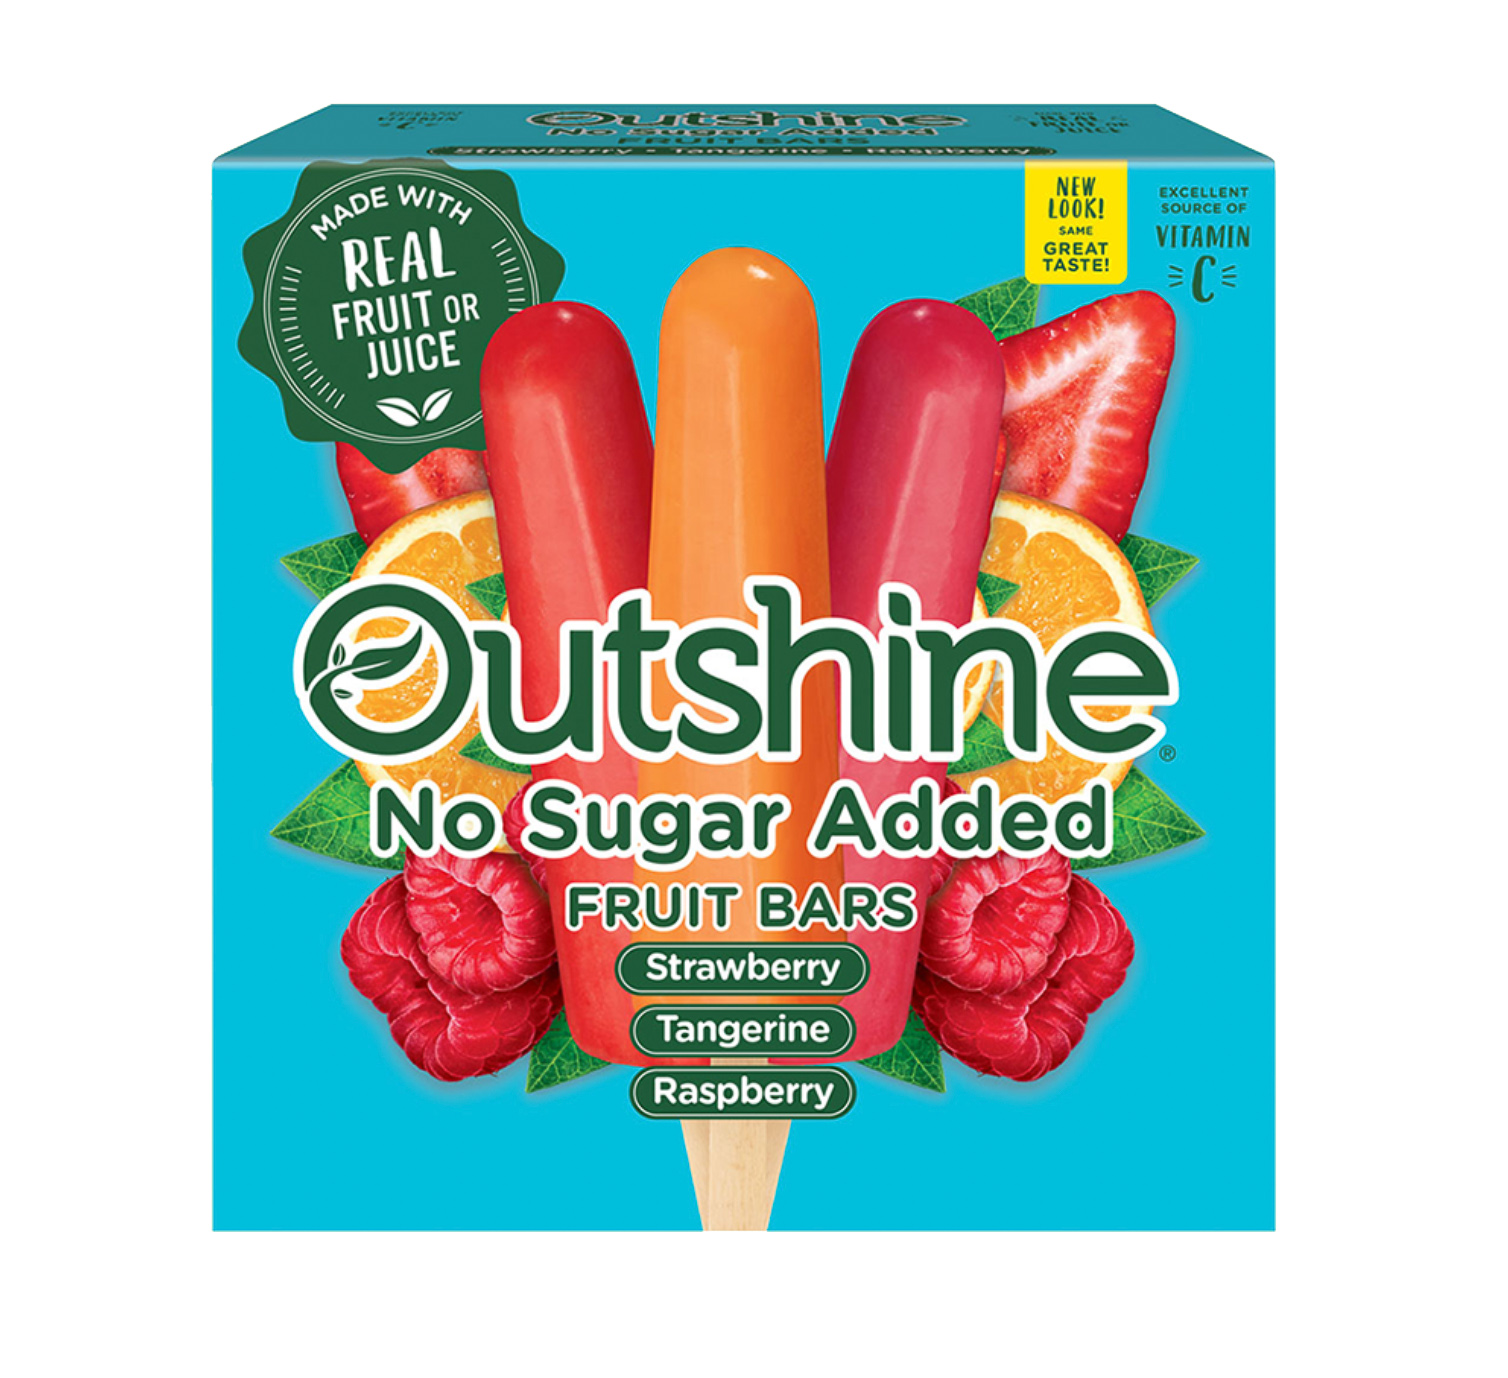 011_OUTSHINE_Group_2-88